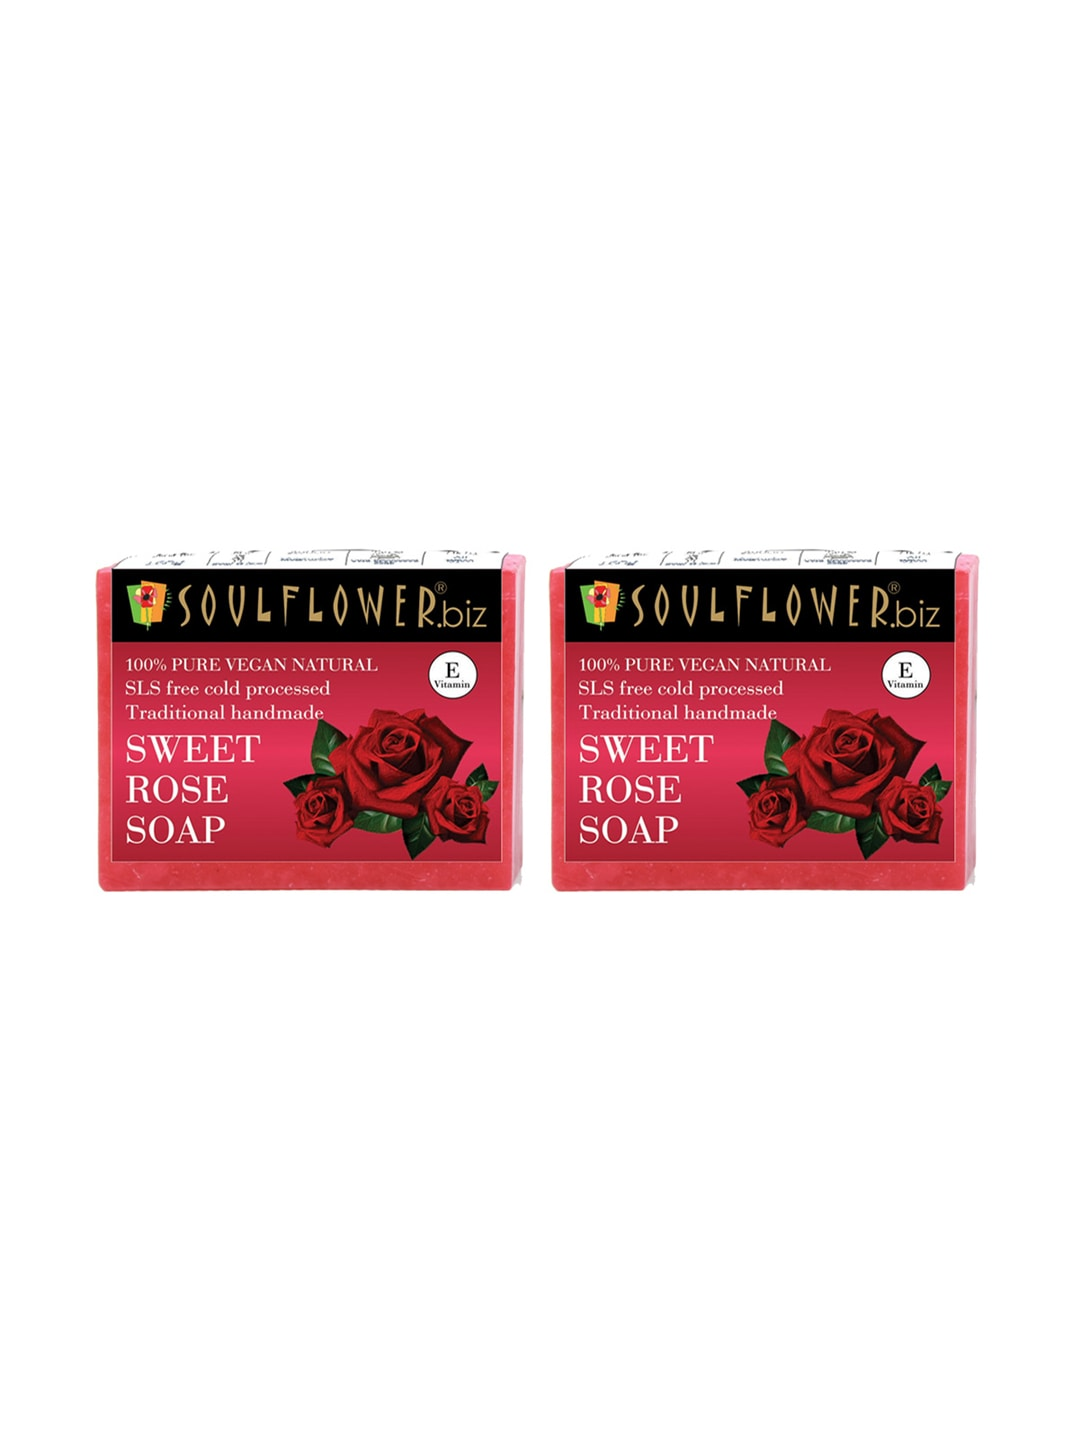 Soulflower Unisex Pack of 2 Sweet Rose Soaps image